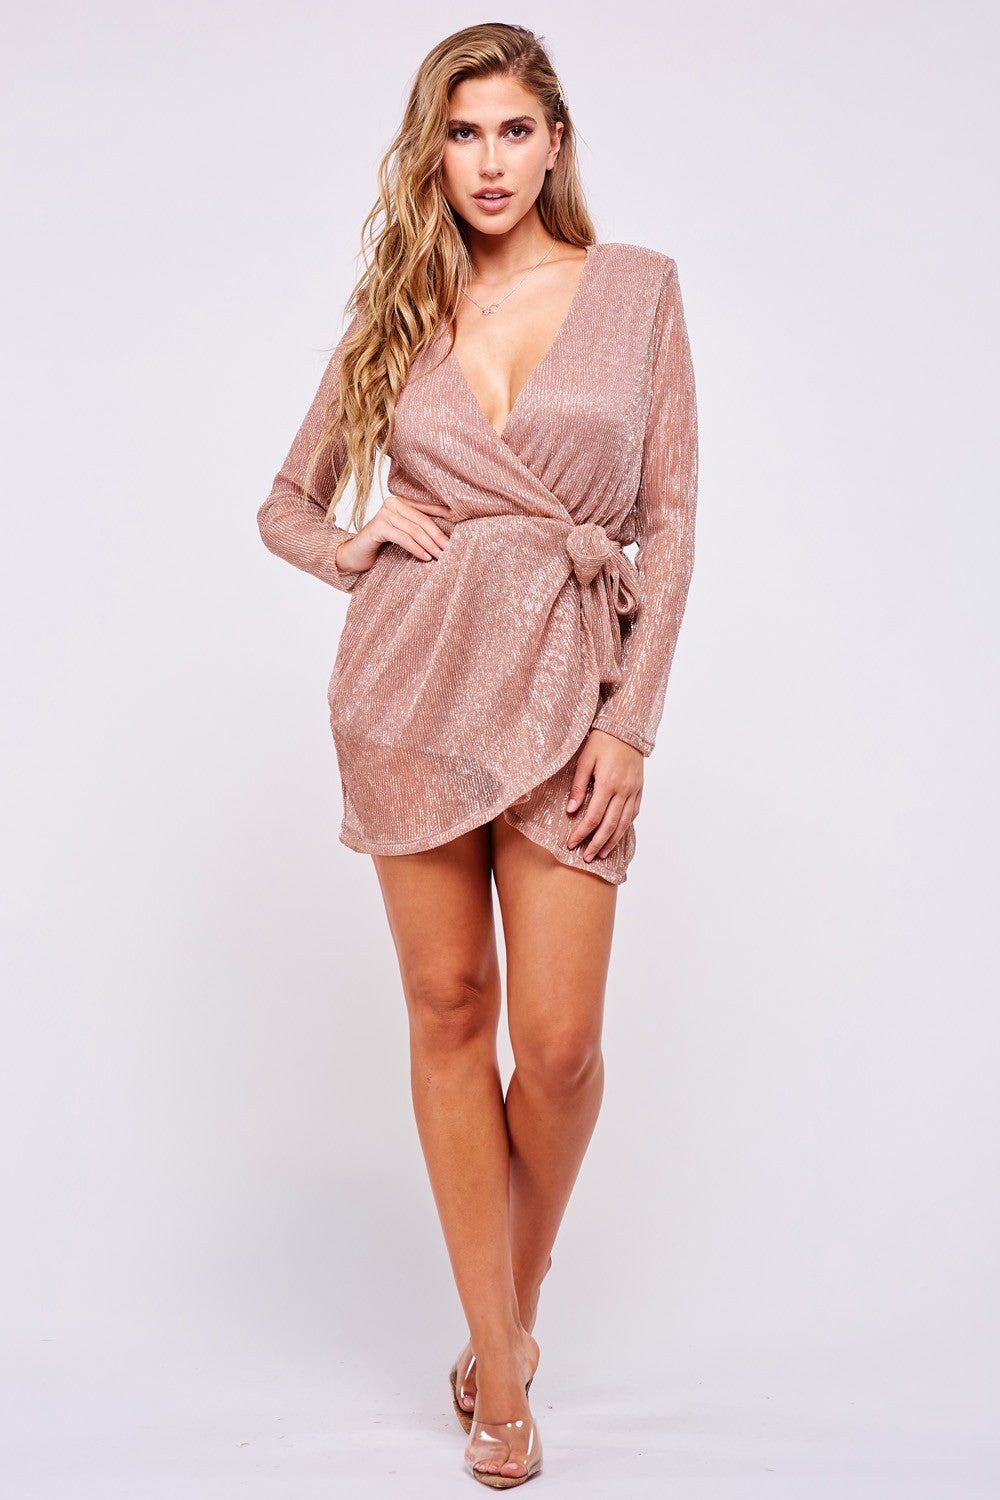 All A Dream Rose Gold Mini Dress